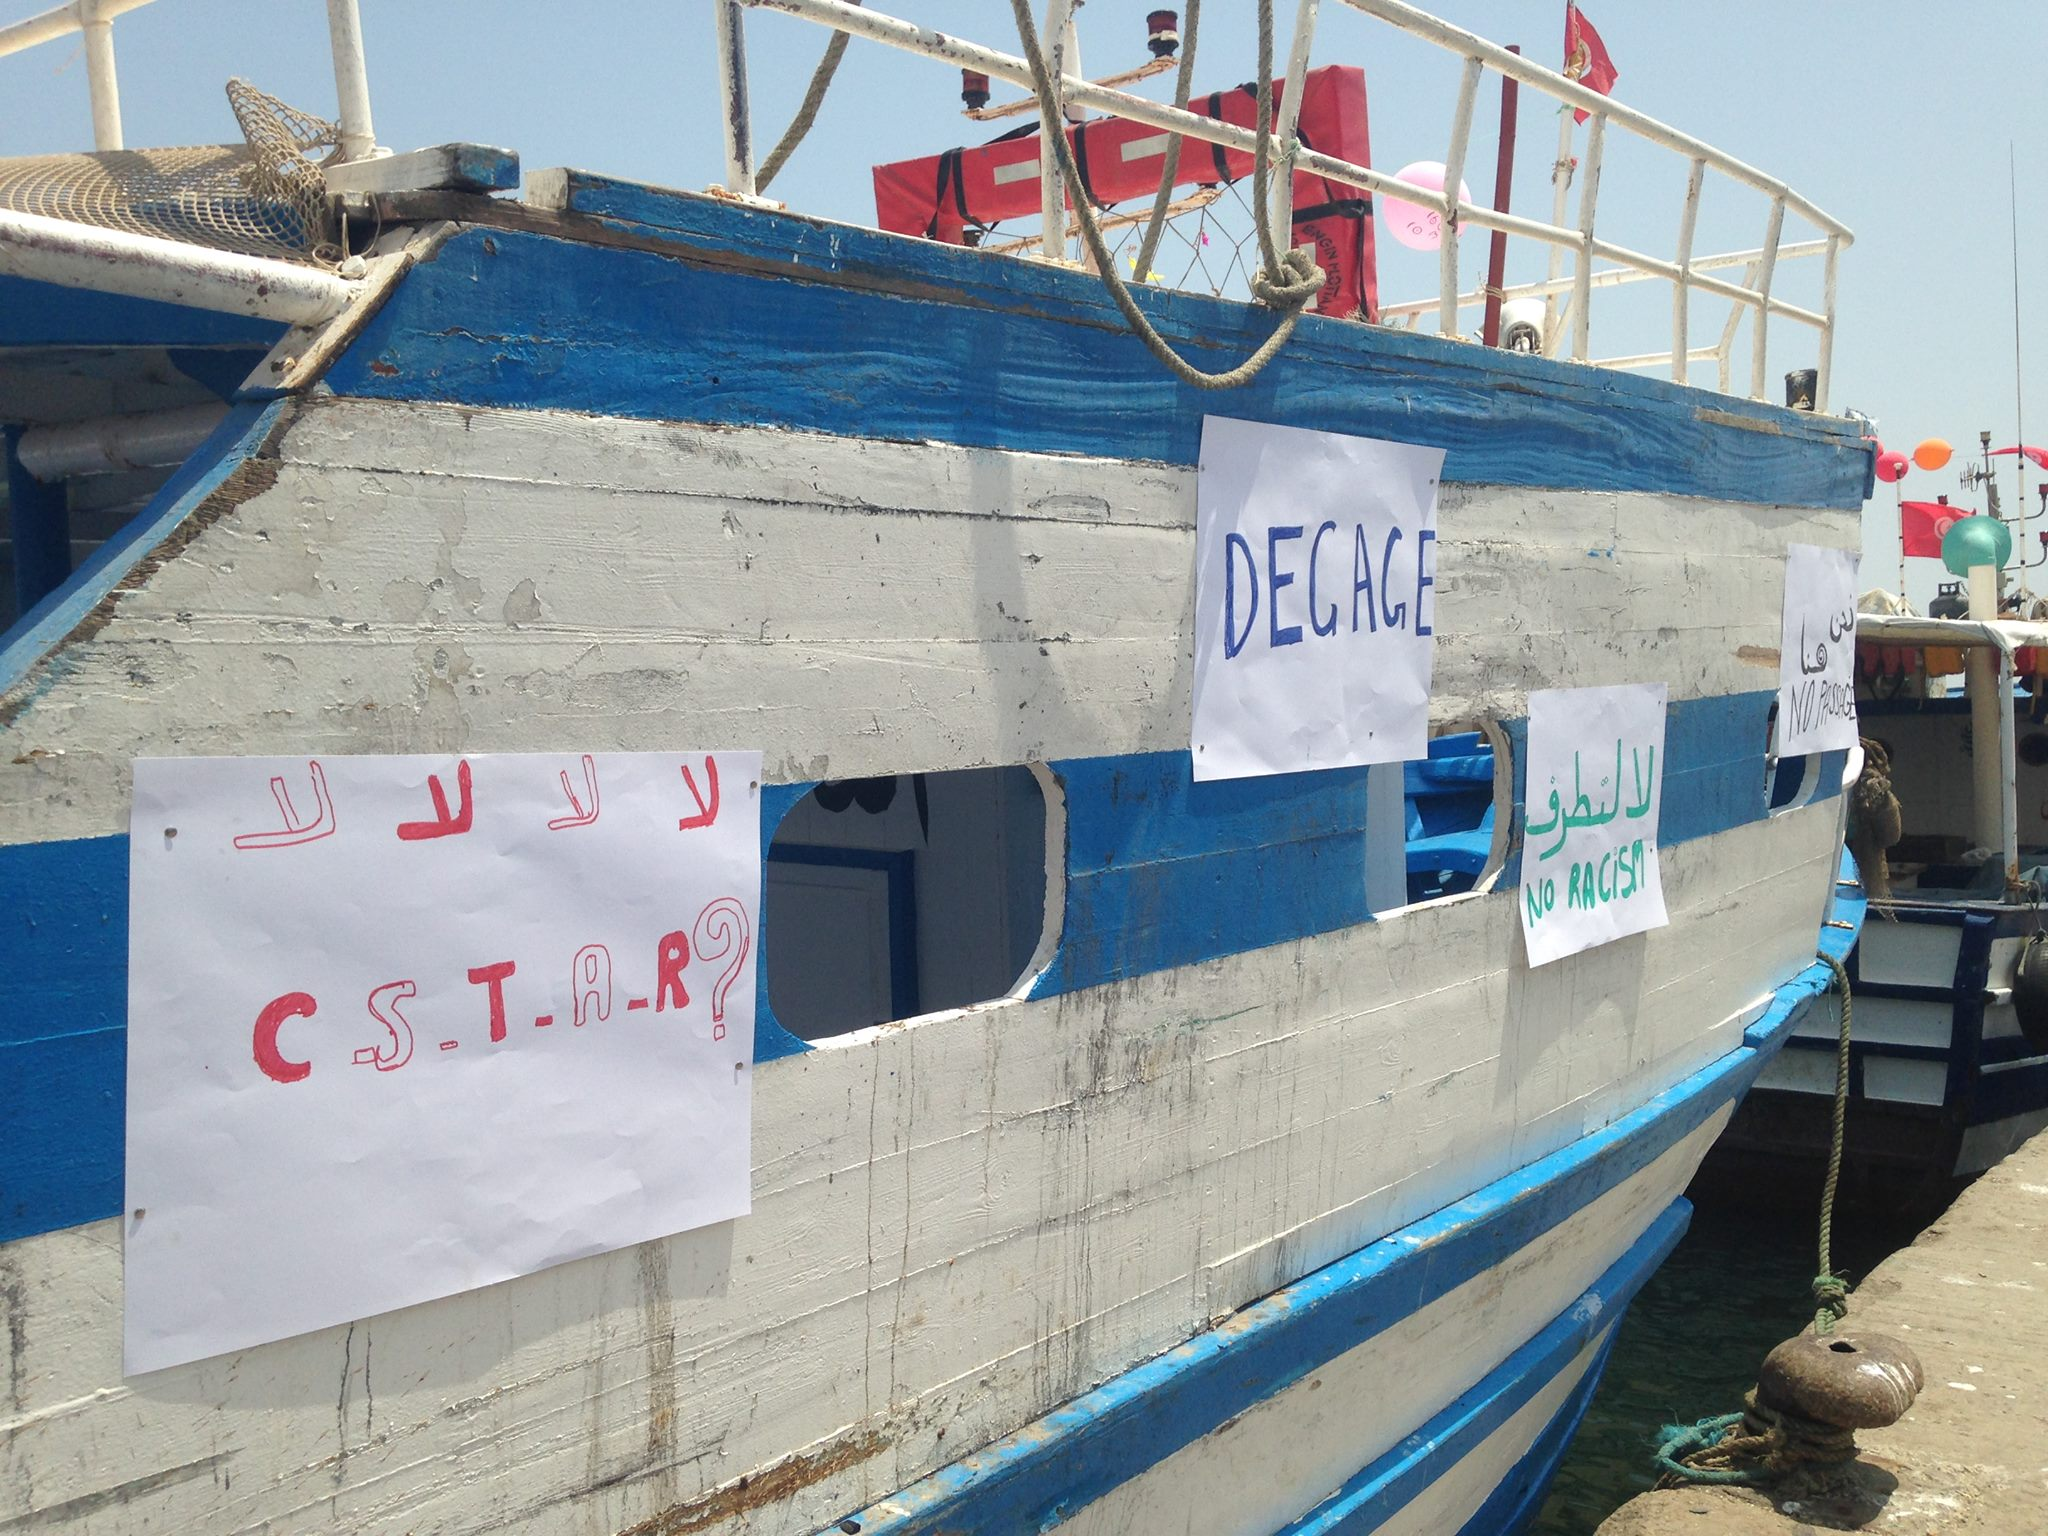 The racist C-Star boat nearby the Tunisian territorial waters: call for vigilance